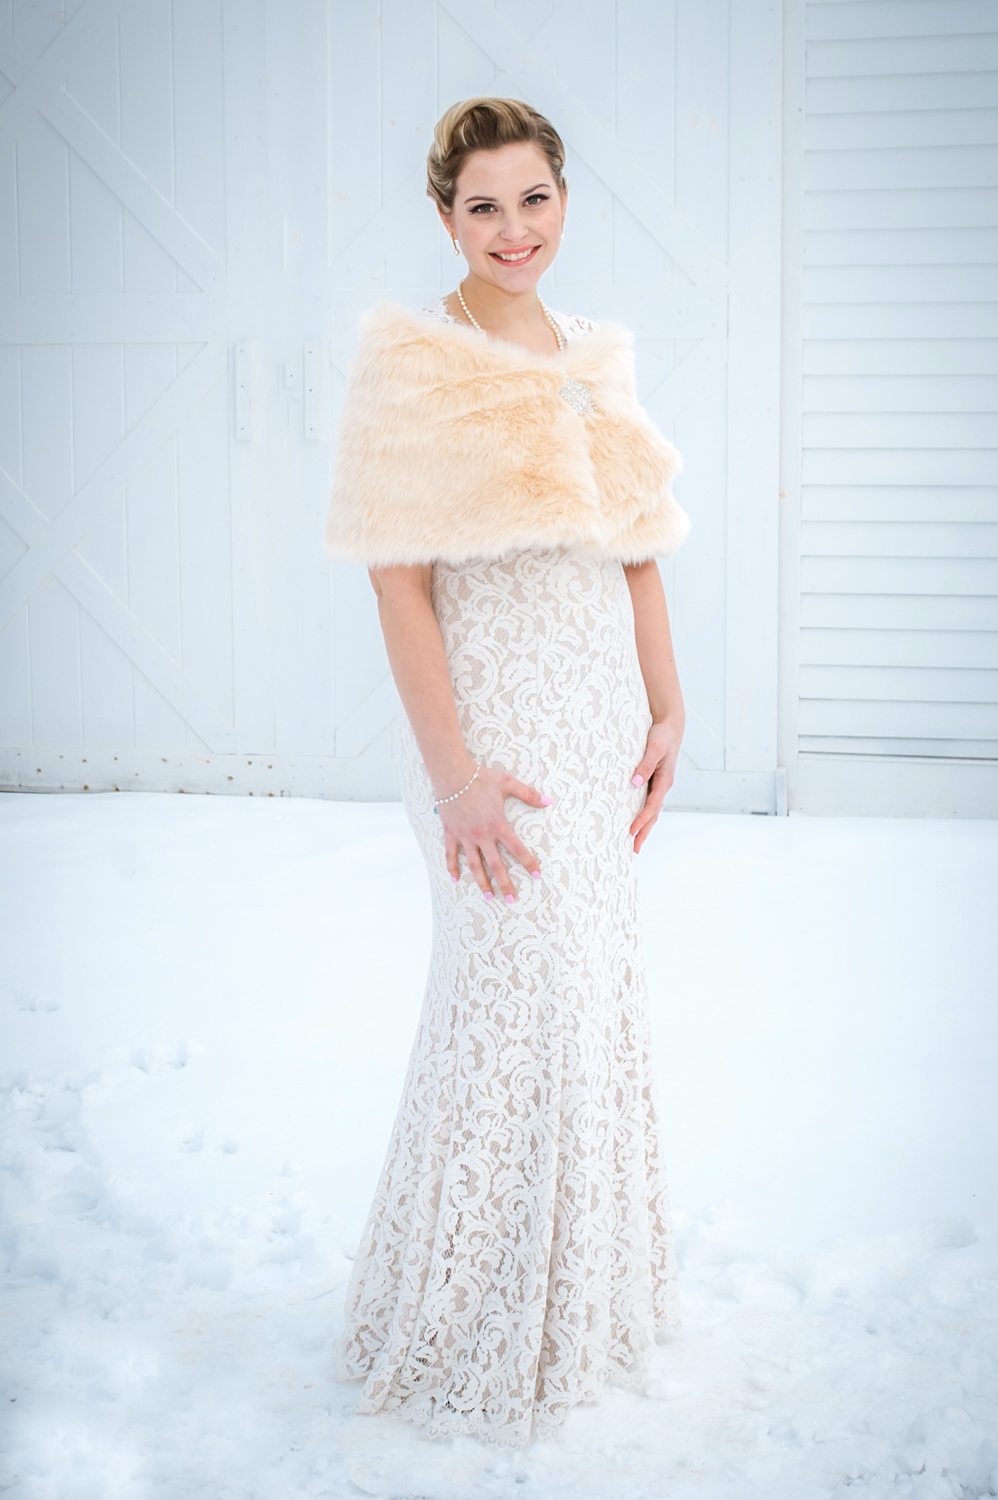 Winter bride in snow at Highland Lake Inn in Andover, NH